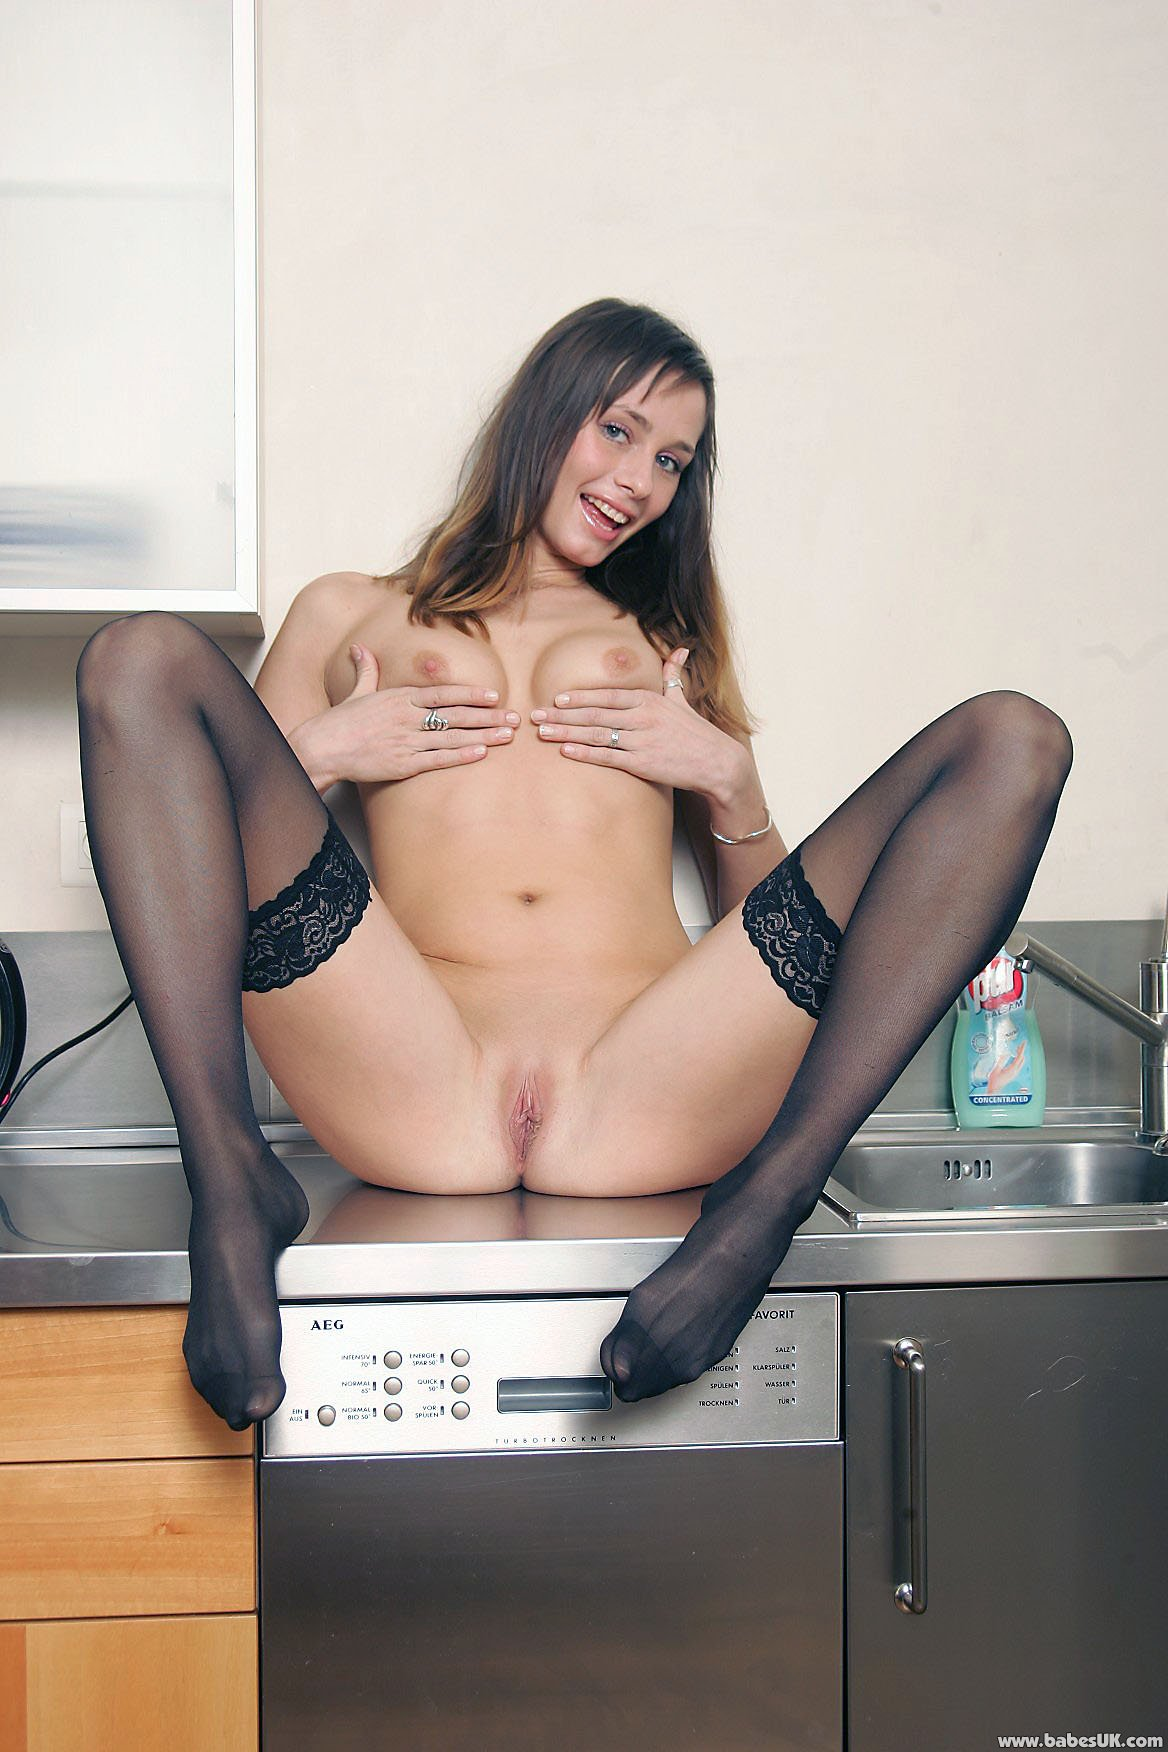 Contact pantyhose social network